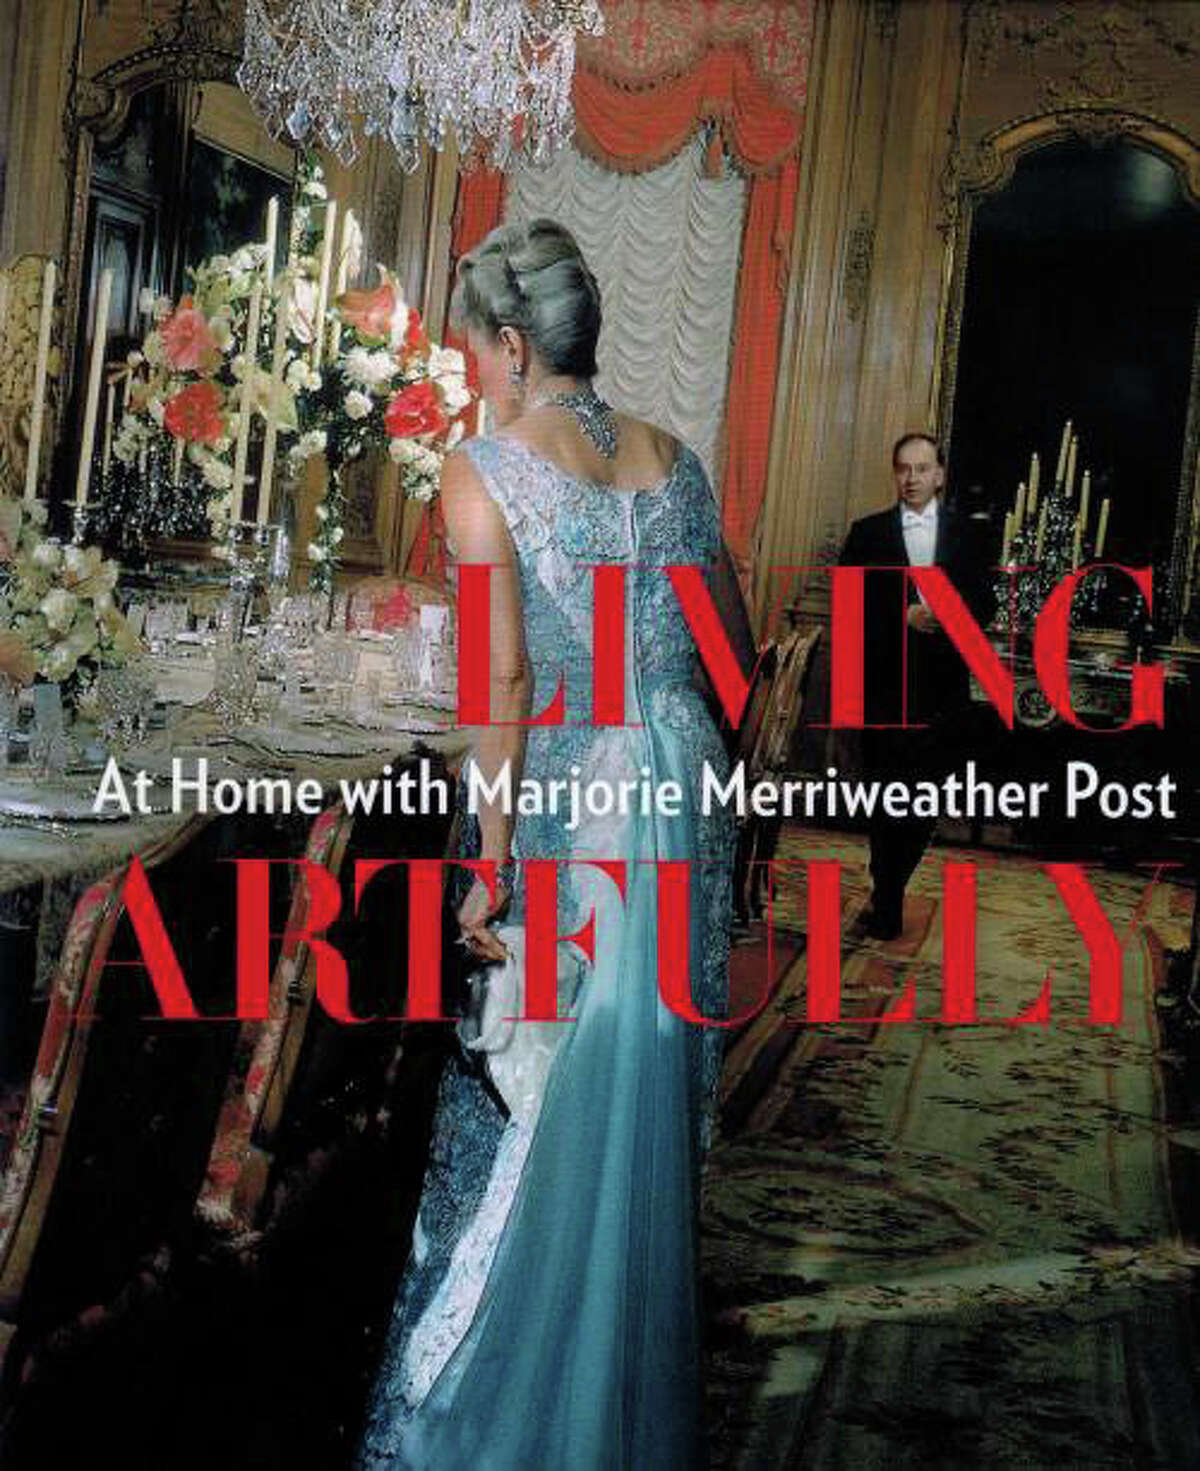 """The Greenwich Historical Society?'s 85th annual meeting and lecture is set for 6 to 8 p.m. Sept. 14 at Indian Harbor Yacht Club, 710 Steamboard Road, and will feature an illustrated lecture by author and curator Estella Chung speaking on ?""""Living Artfully: At Home With Marjorie Merriweather Post.?"""" Tickets are $65 for Greenwich Historical Society members, $75 for nonmembers. Reservations required. For information or reservations, visit www.greenwichhistory.org or call 203-869-6899. Tickets must be purchased by Sept. 7."""